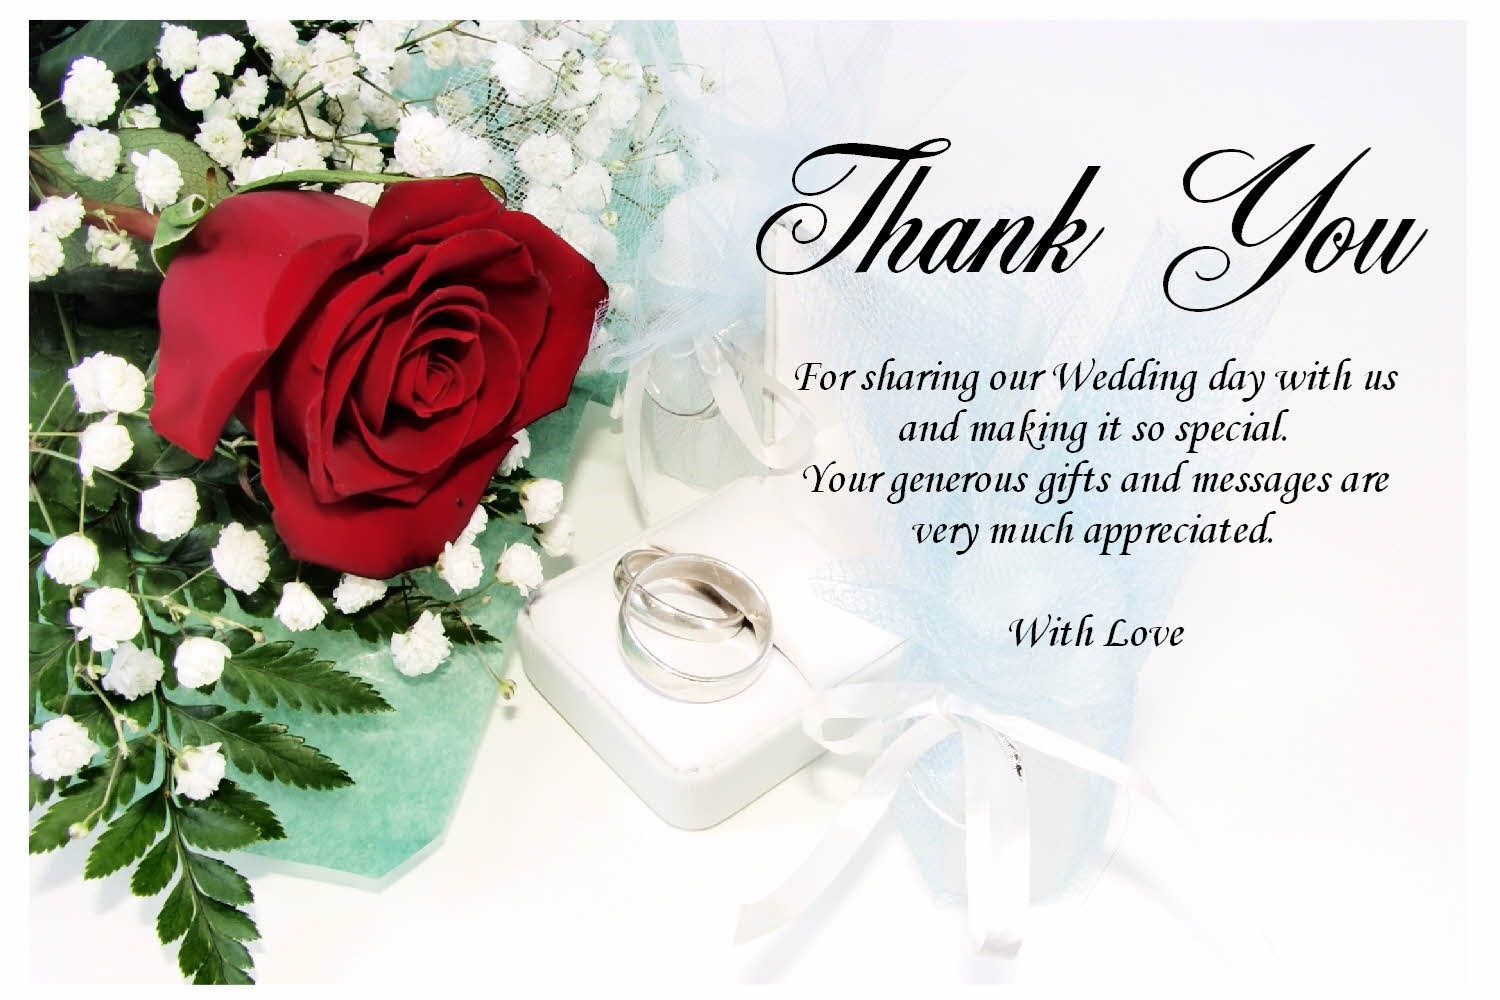 Thank You My Love Quotes Free Hd Wallpapers